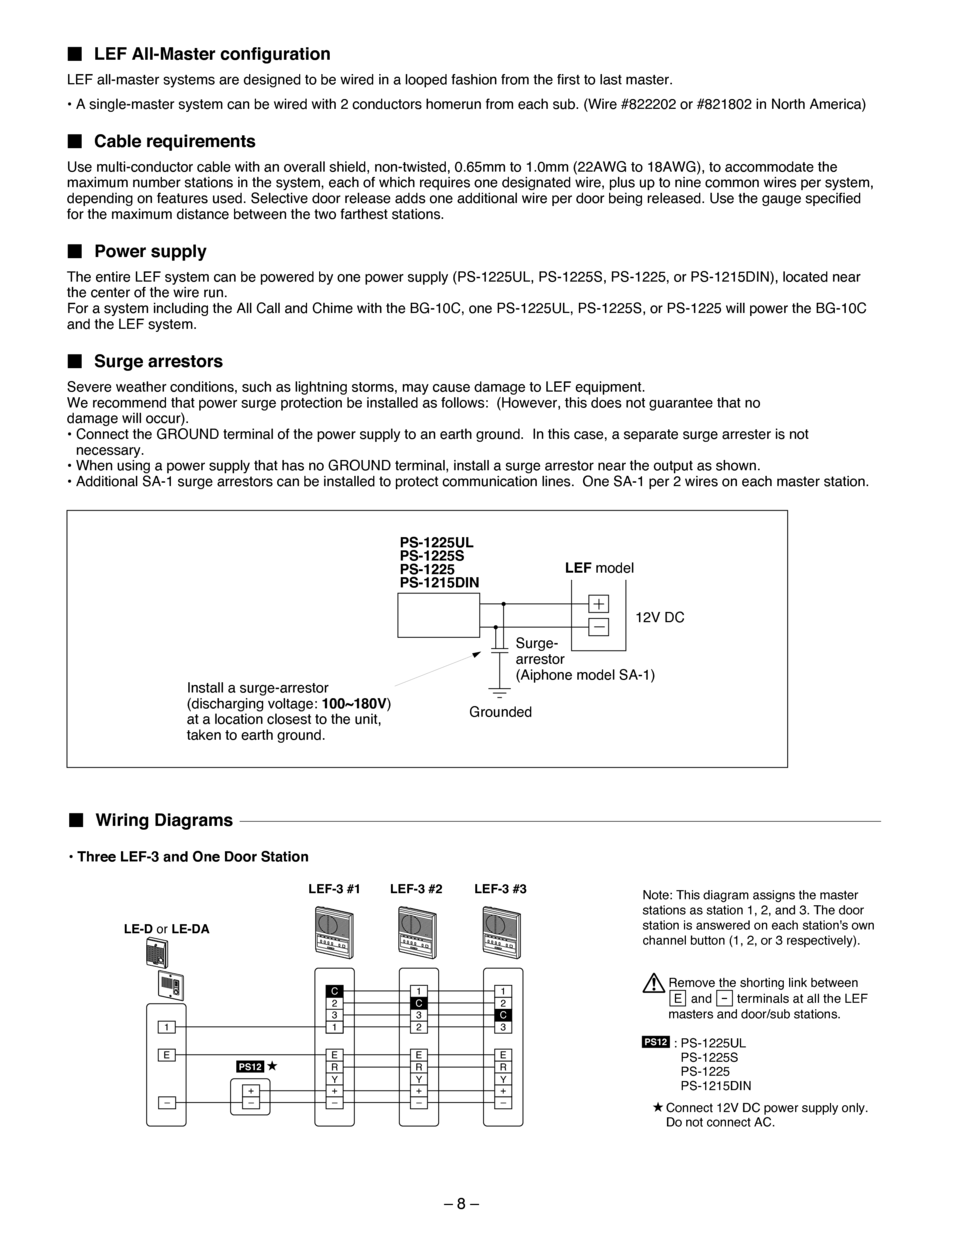 Aiphone Lef 3l Wiring Diagram on